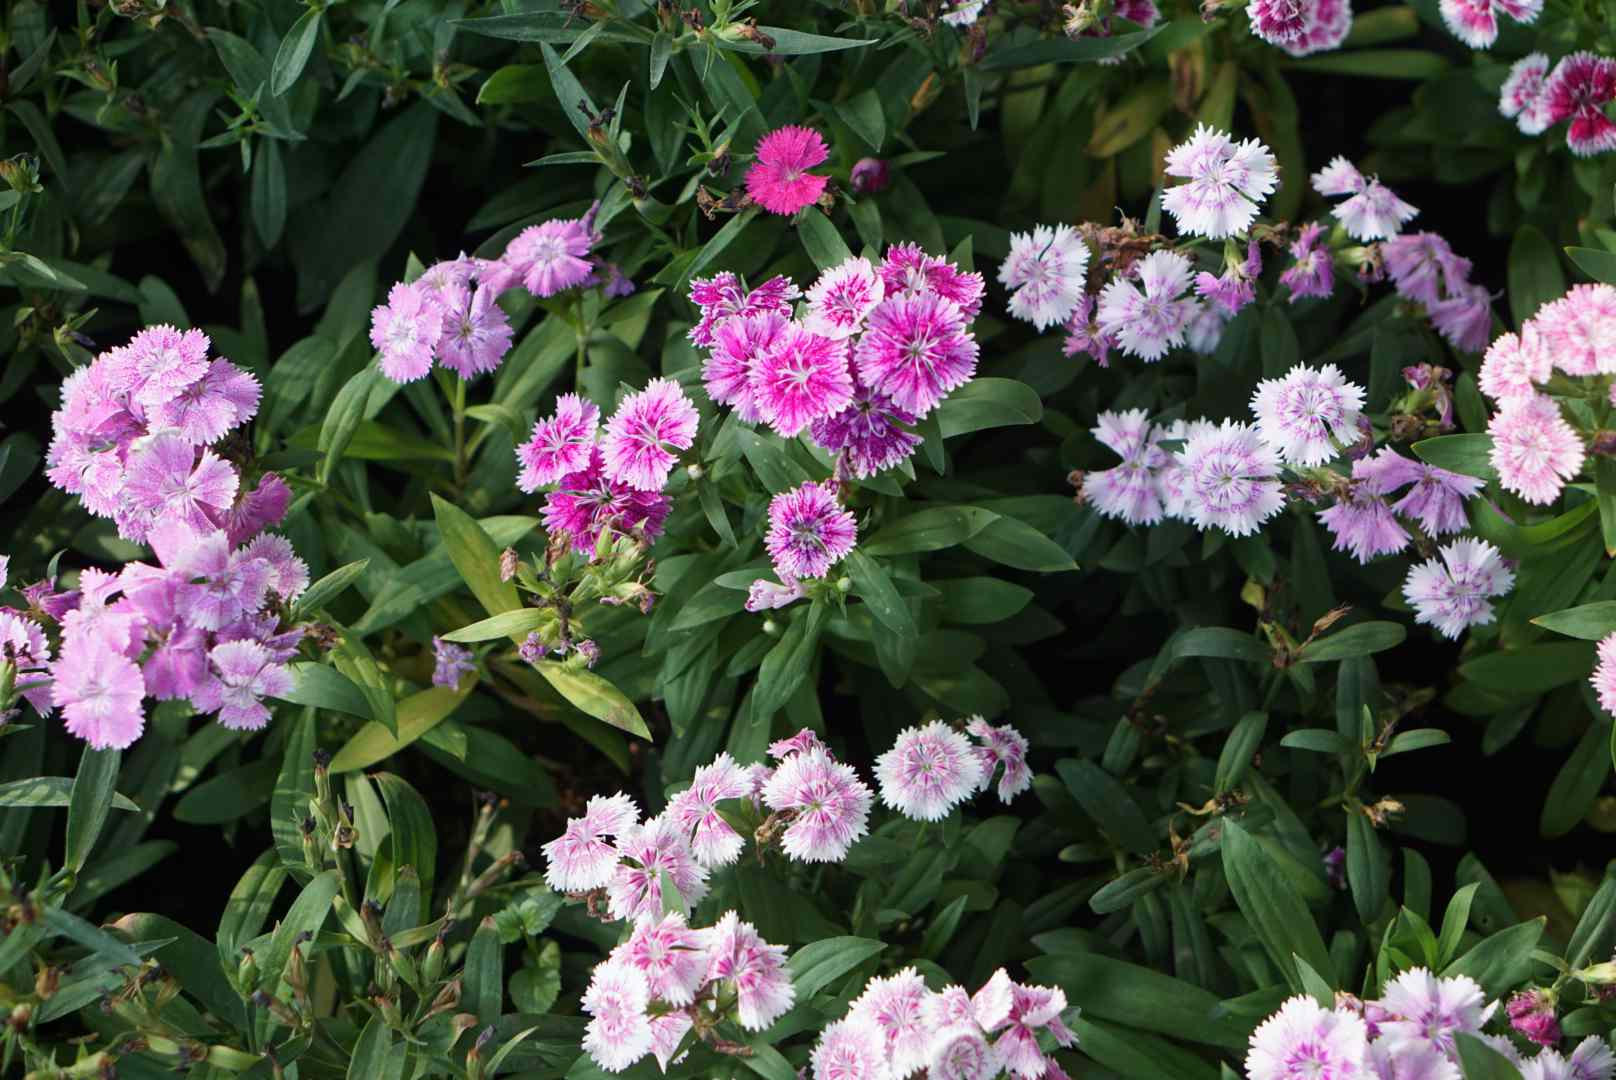 Sweet Williams plant with circular pink and light pink flowers clustered together